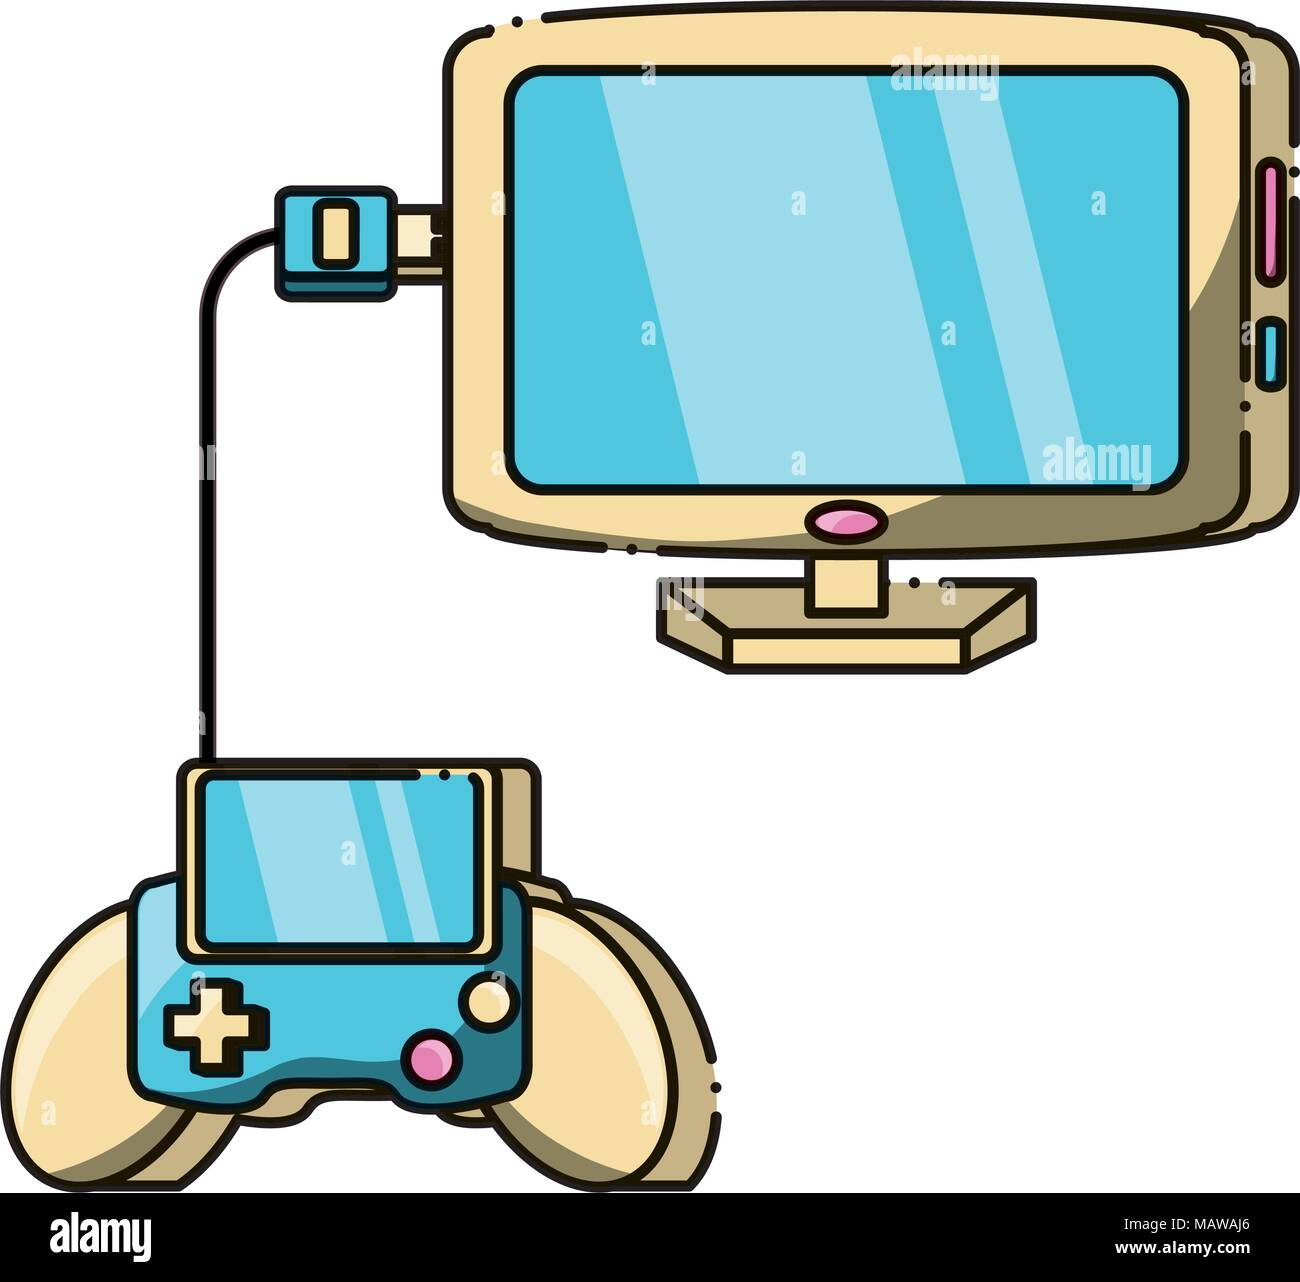 portable videogame connected to computer over white background, vector illustration - Stock Image